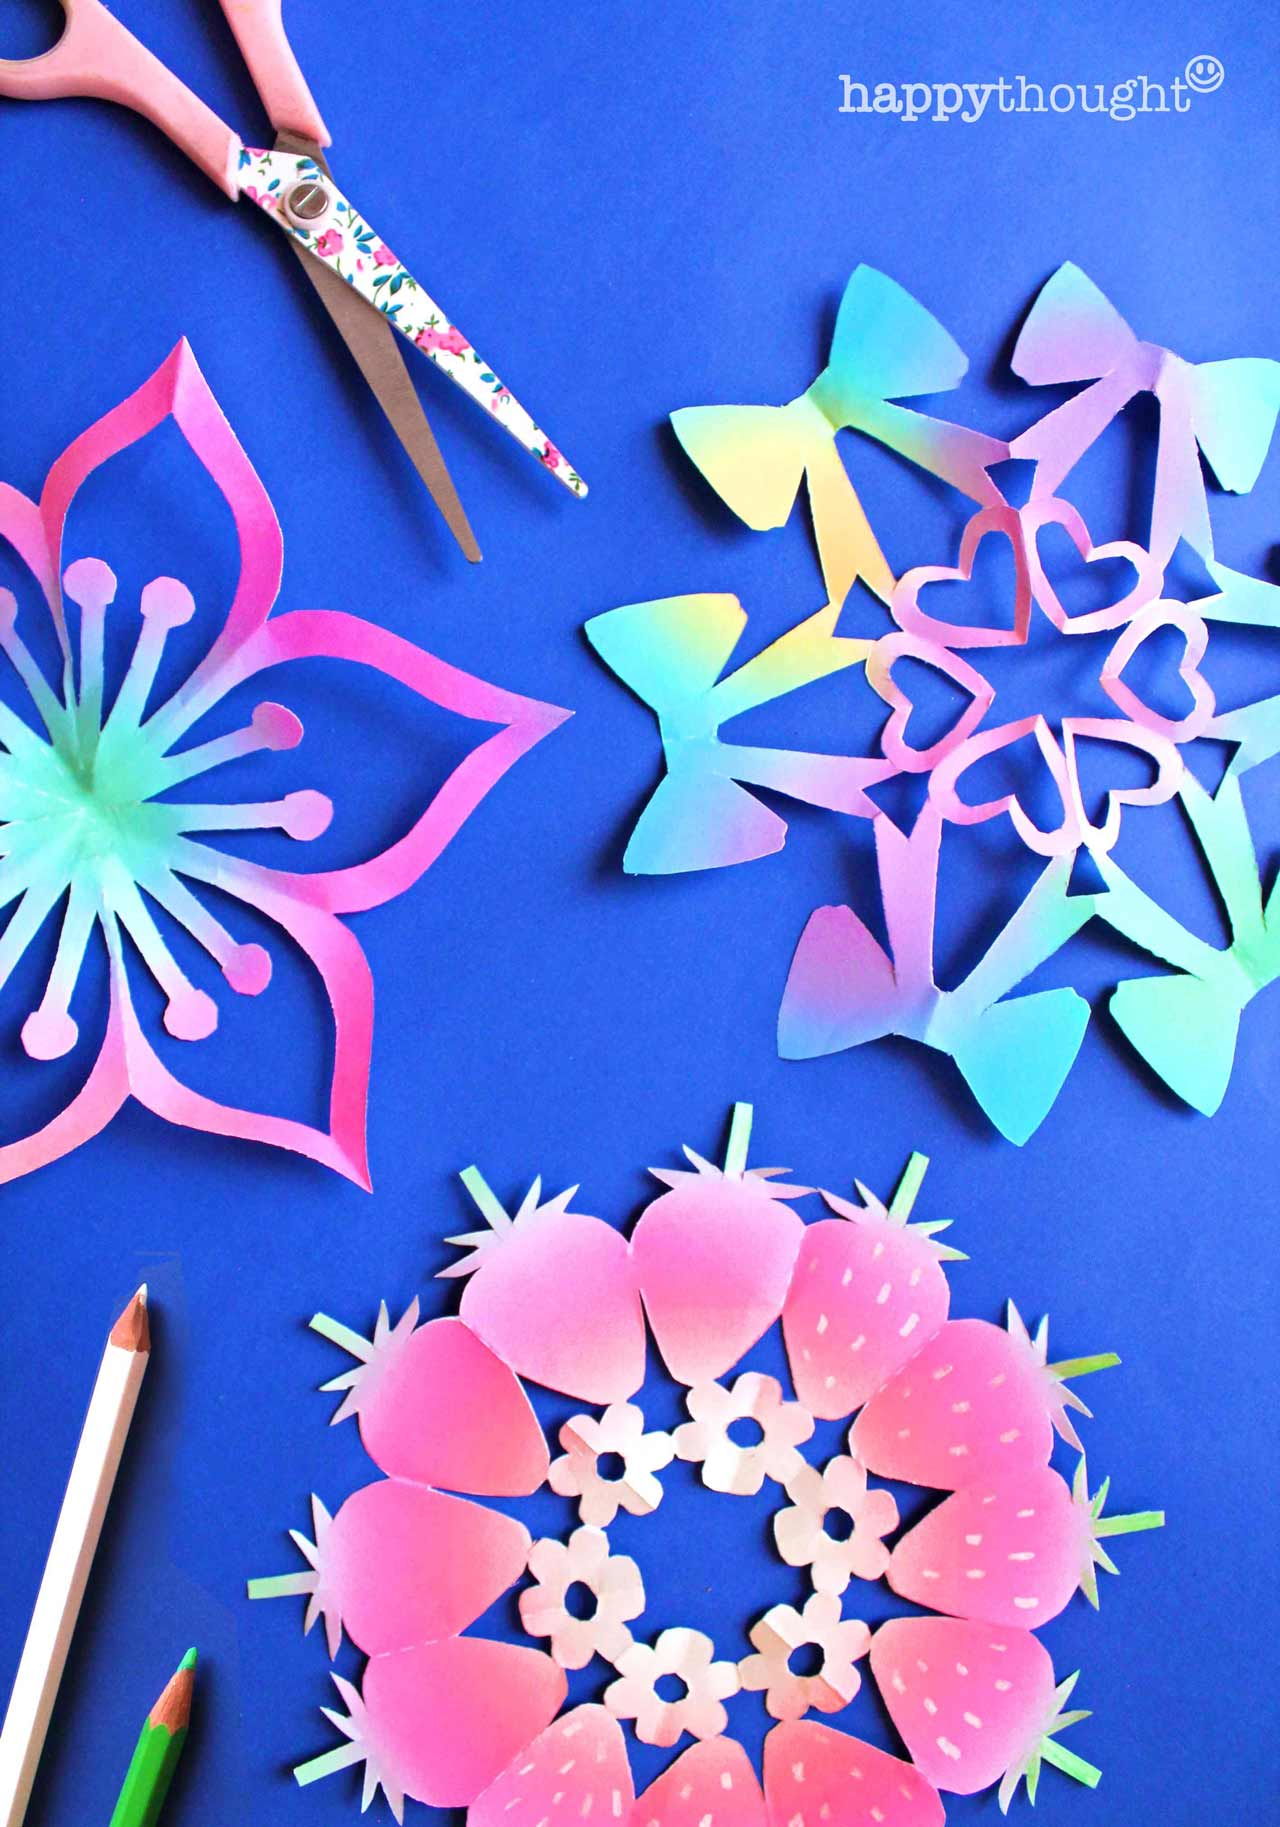 12 snowflake templates - Strawberries pastel bows flowers snowflake templates and patterns